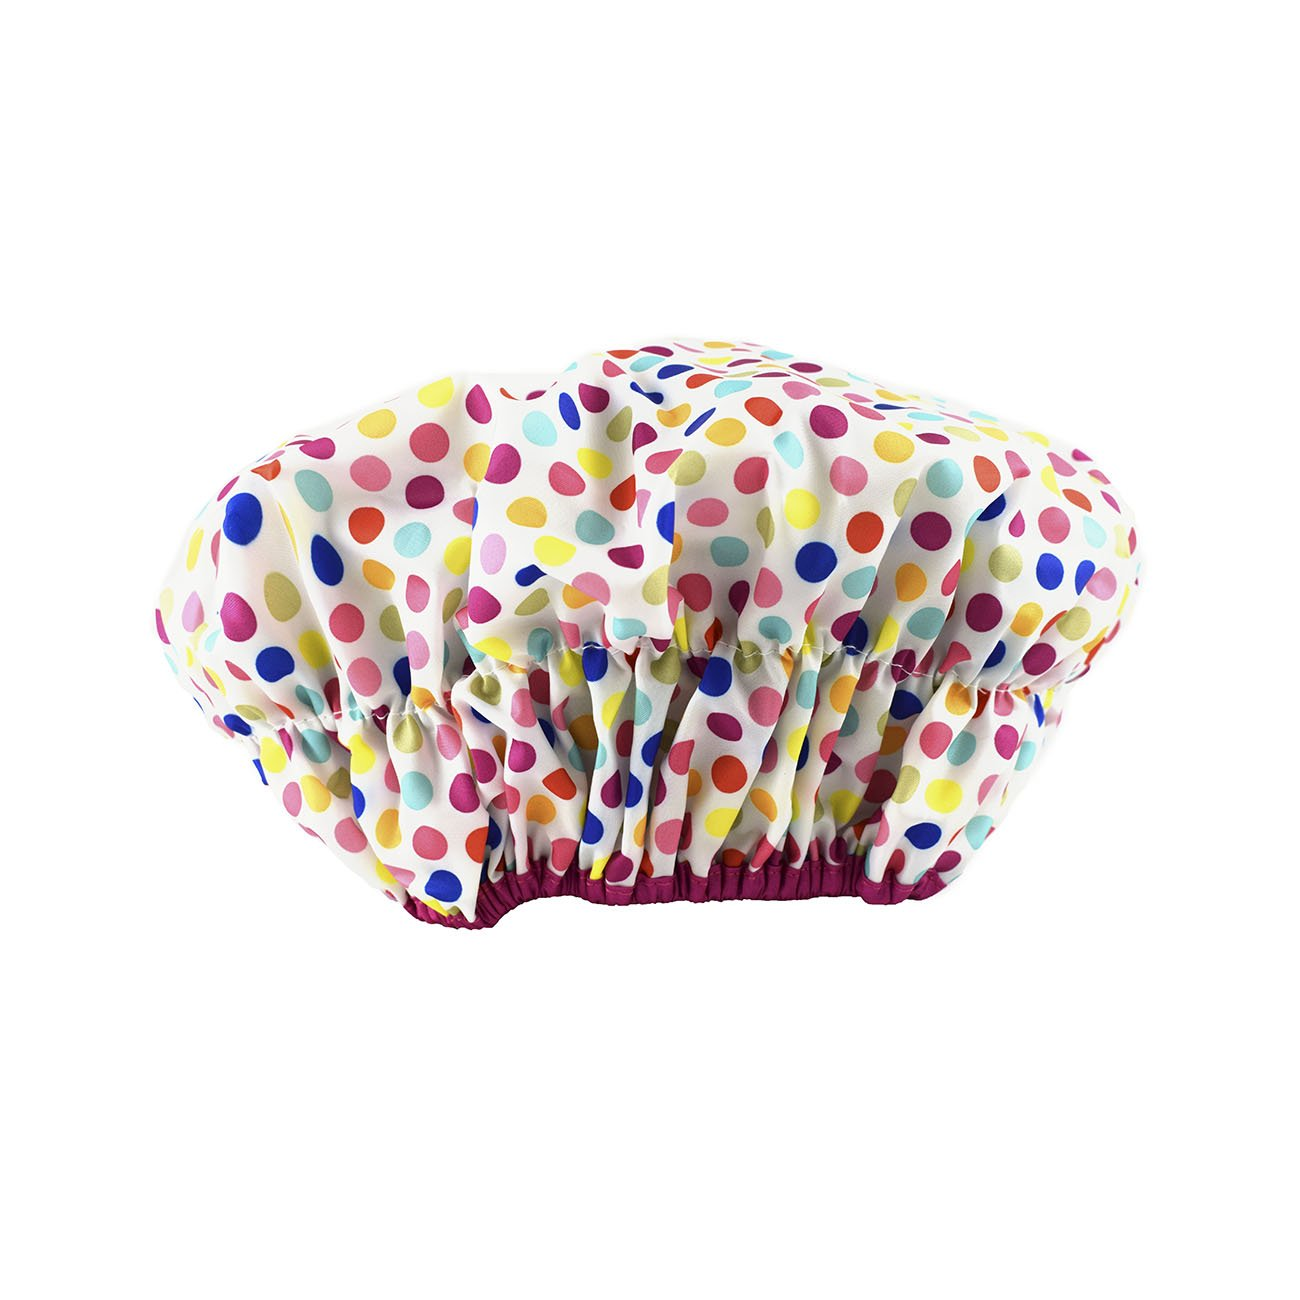 Betty Dain Fashionista Collection Mold Resistant Lined Shower Cap, Waterproof Exterior, PEVA Lining, Mold and Mildew Resistant, Oversized Design for All Hair Lengths, Elasticized Hem, Deco Dots : Beauty